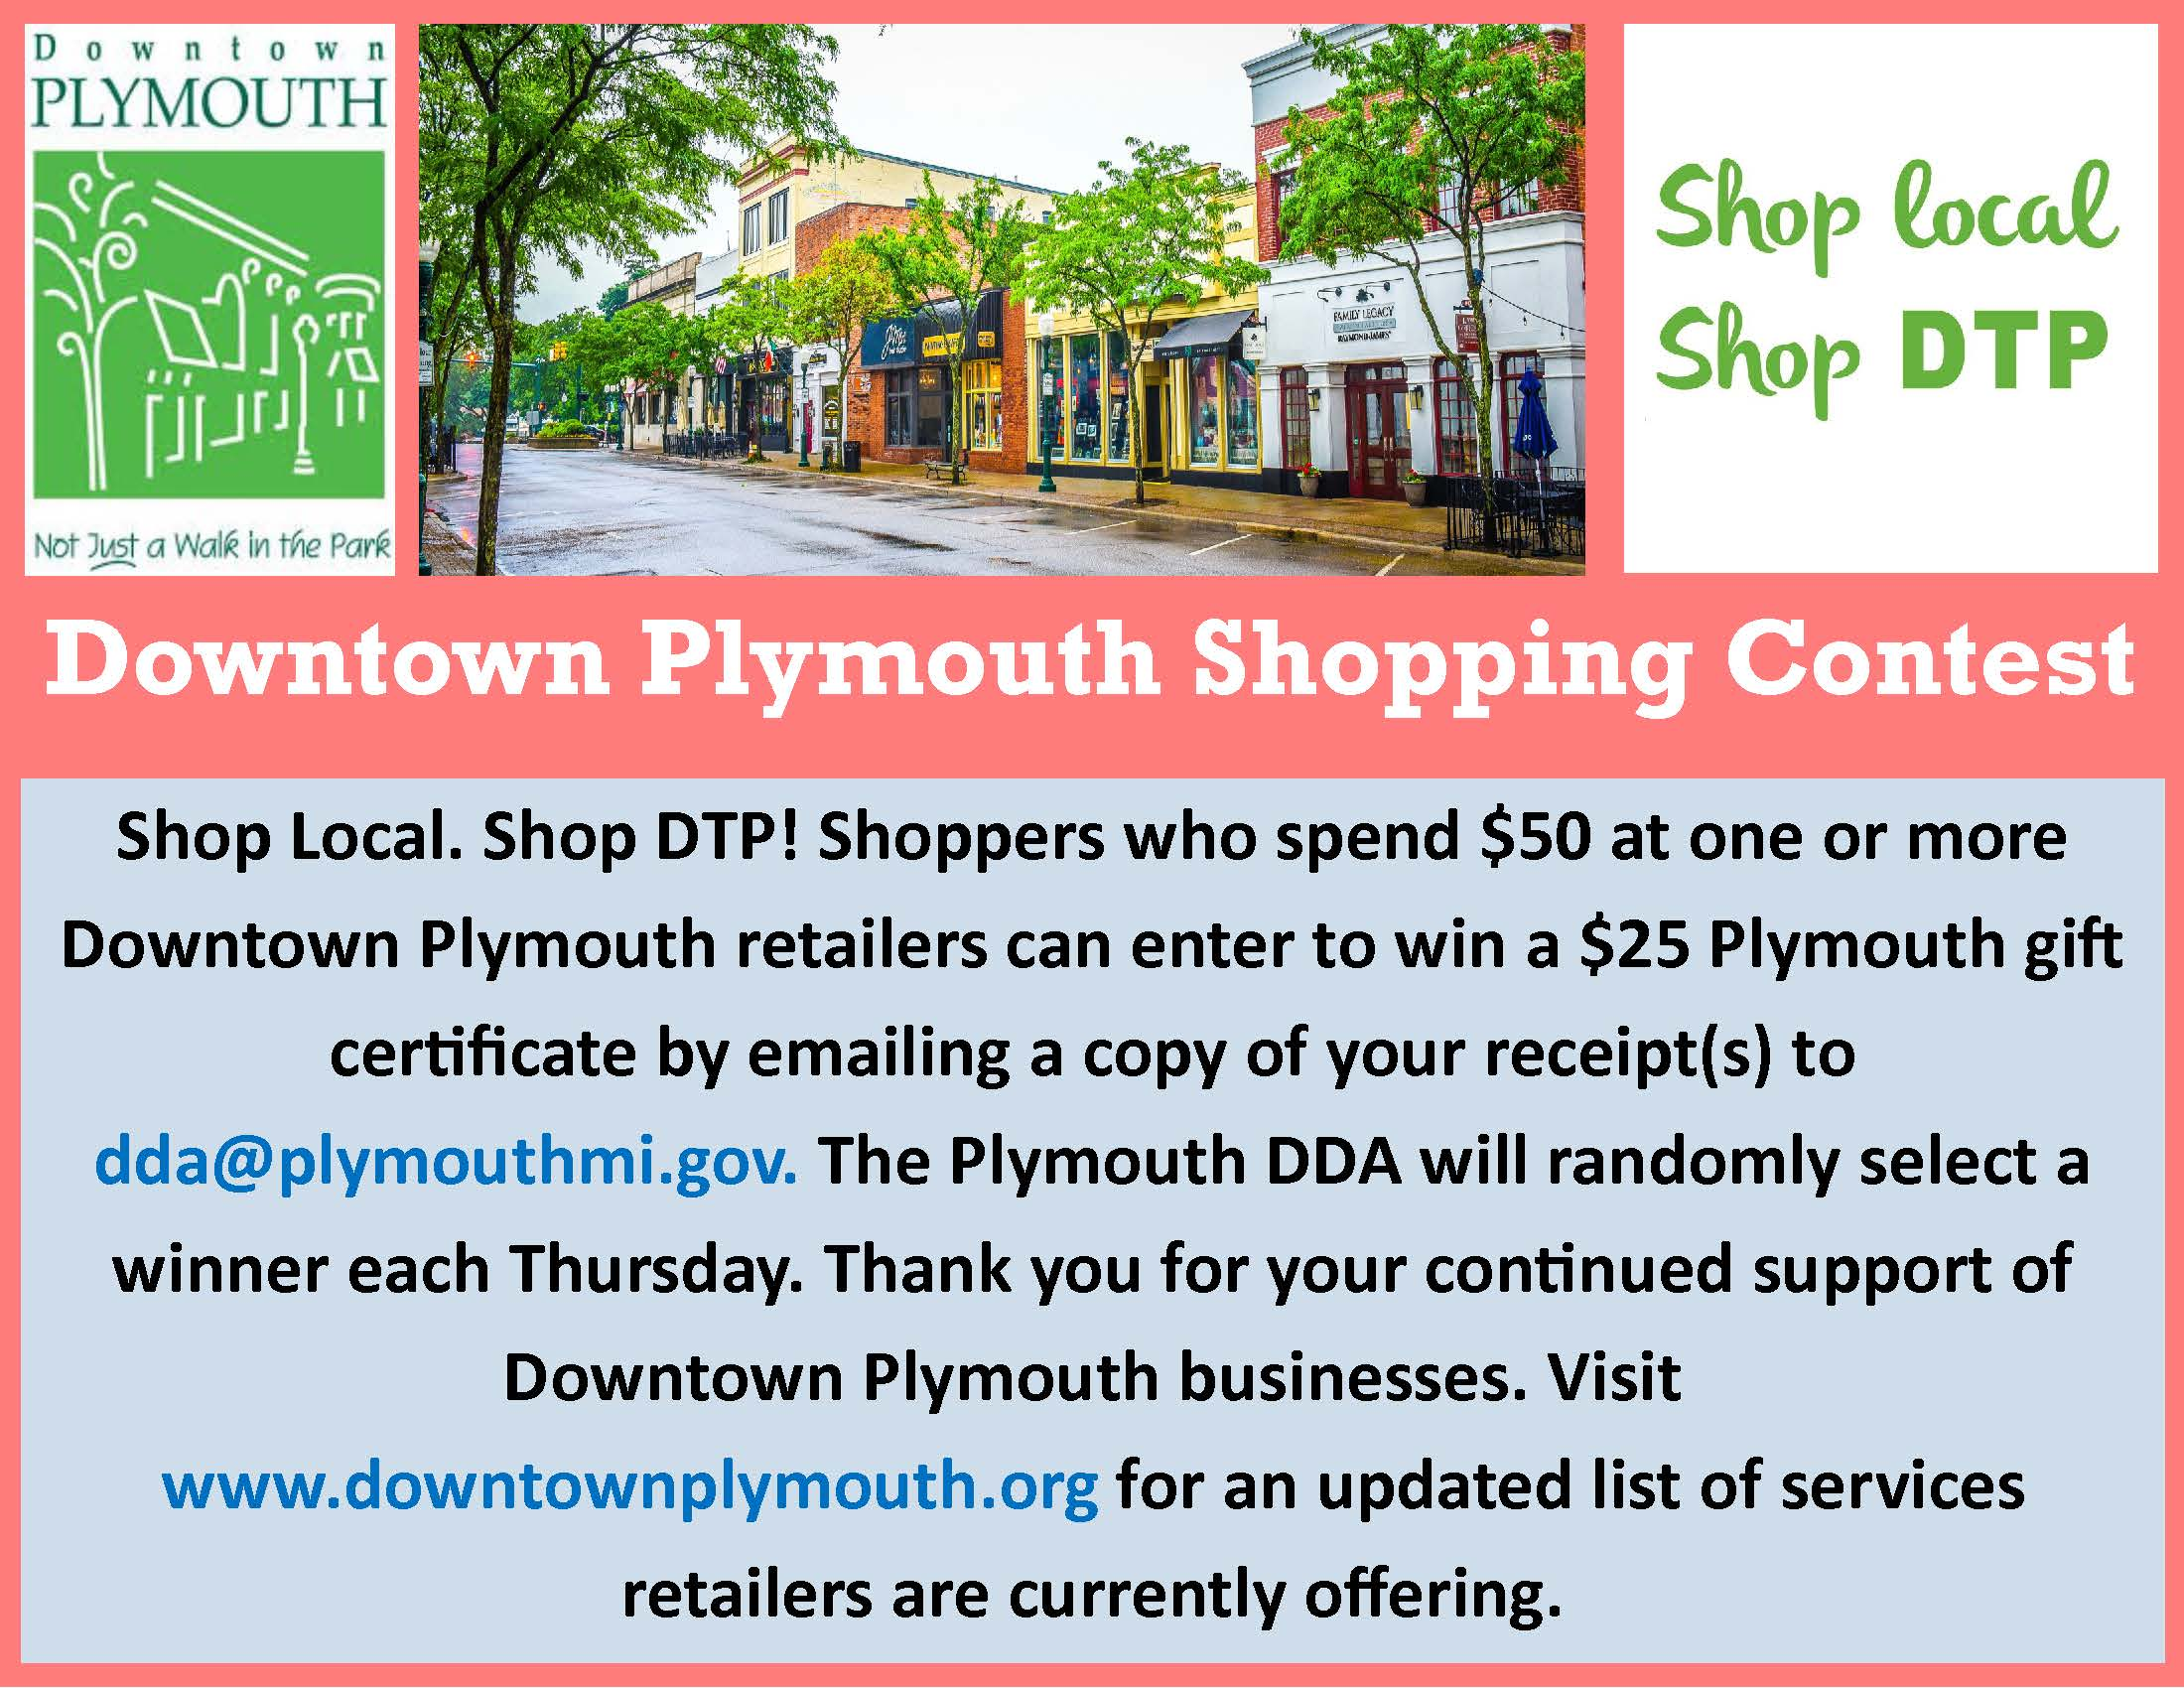 Downtown Plymouth Retail Contest version 3